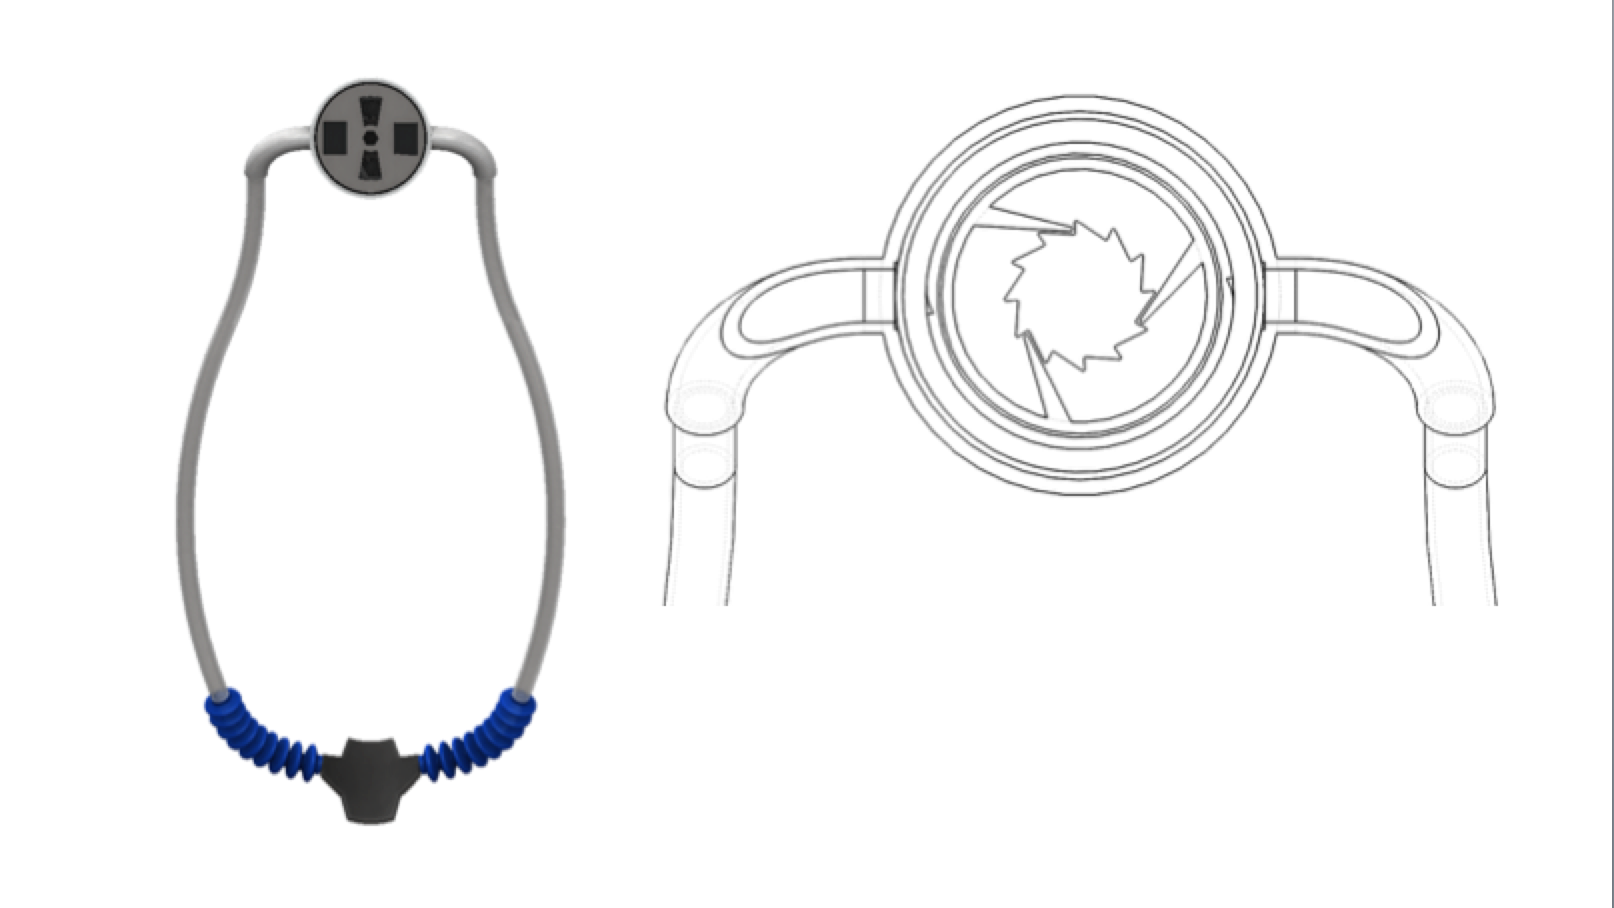 An Adjustable Sling Medical Device